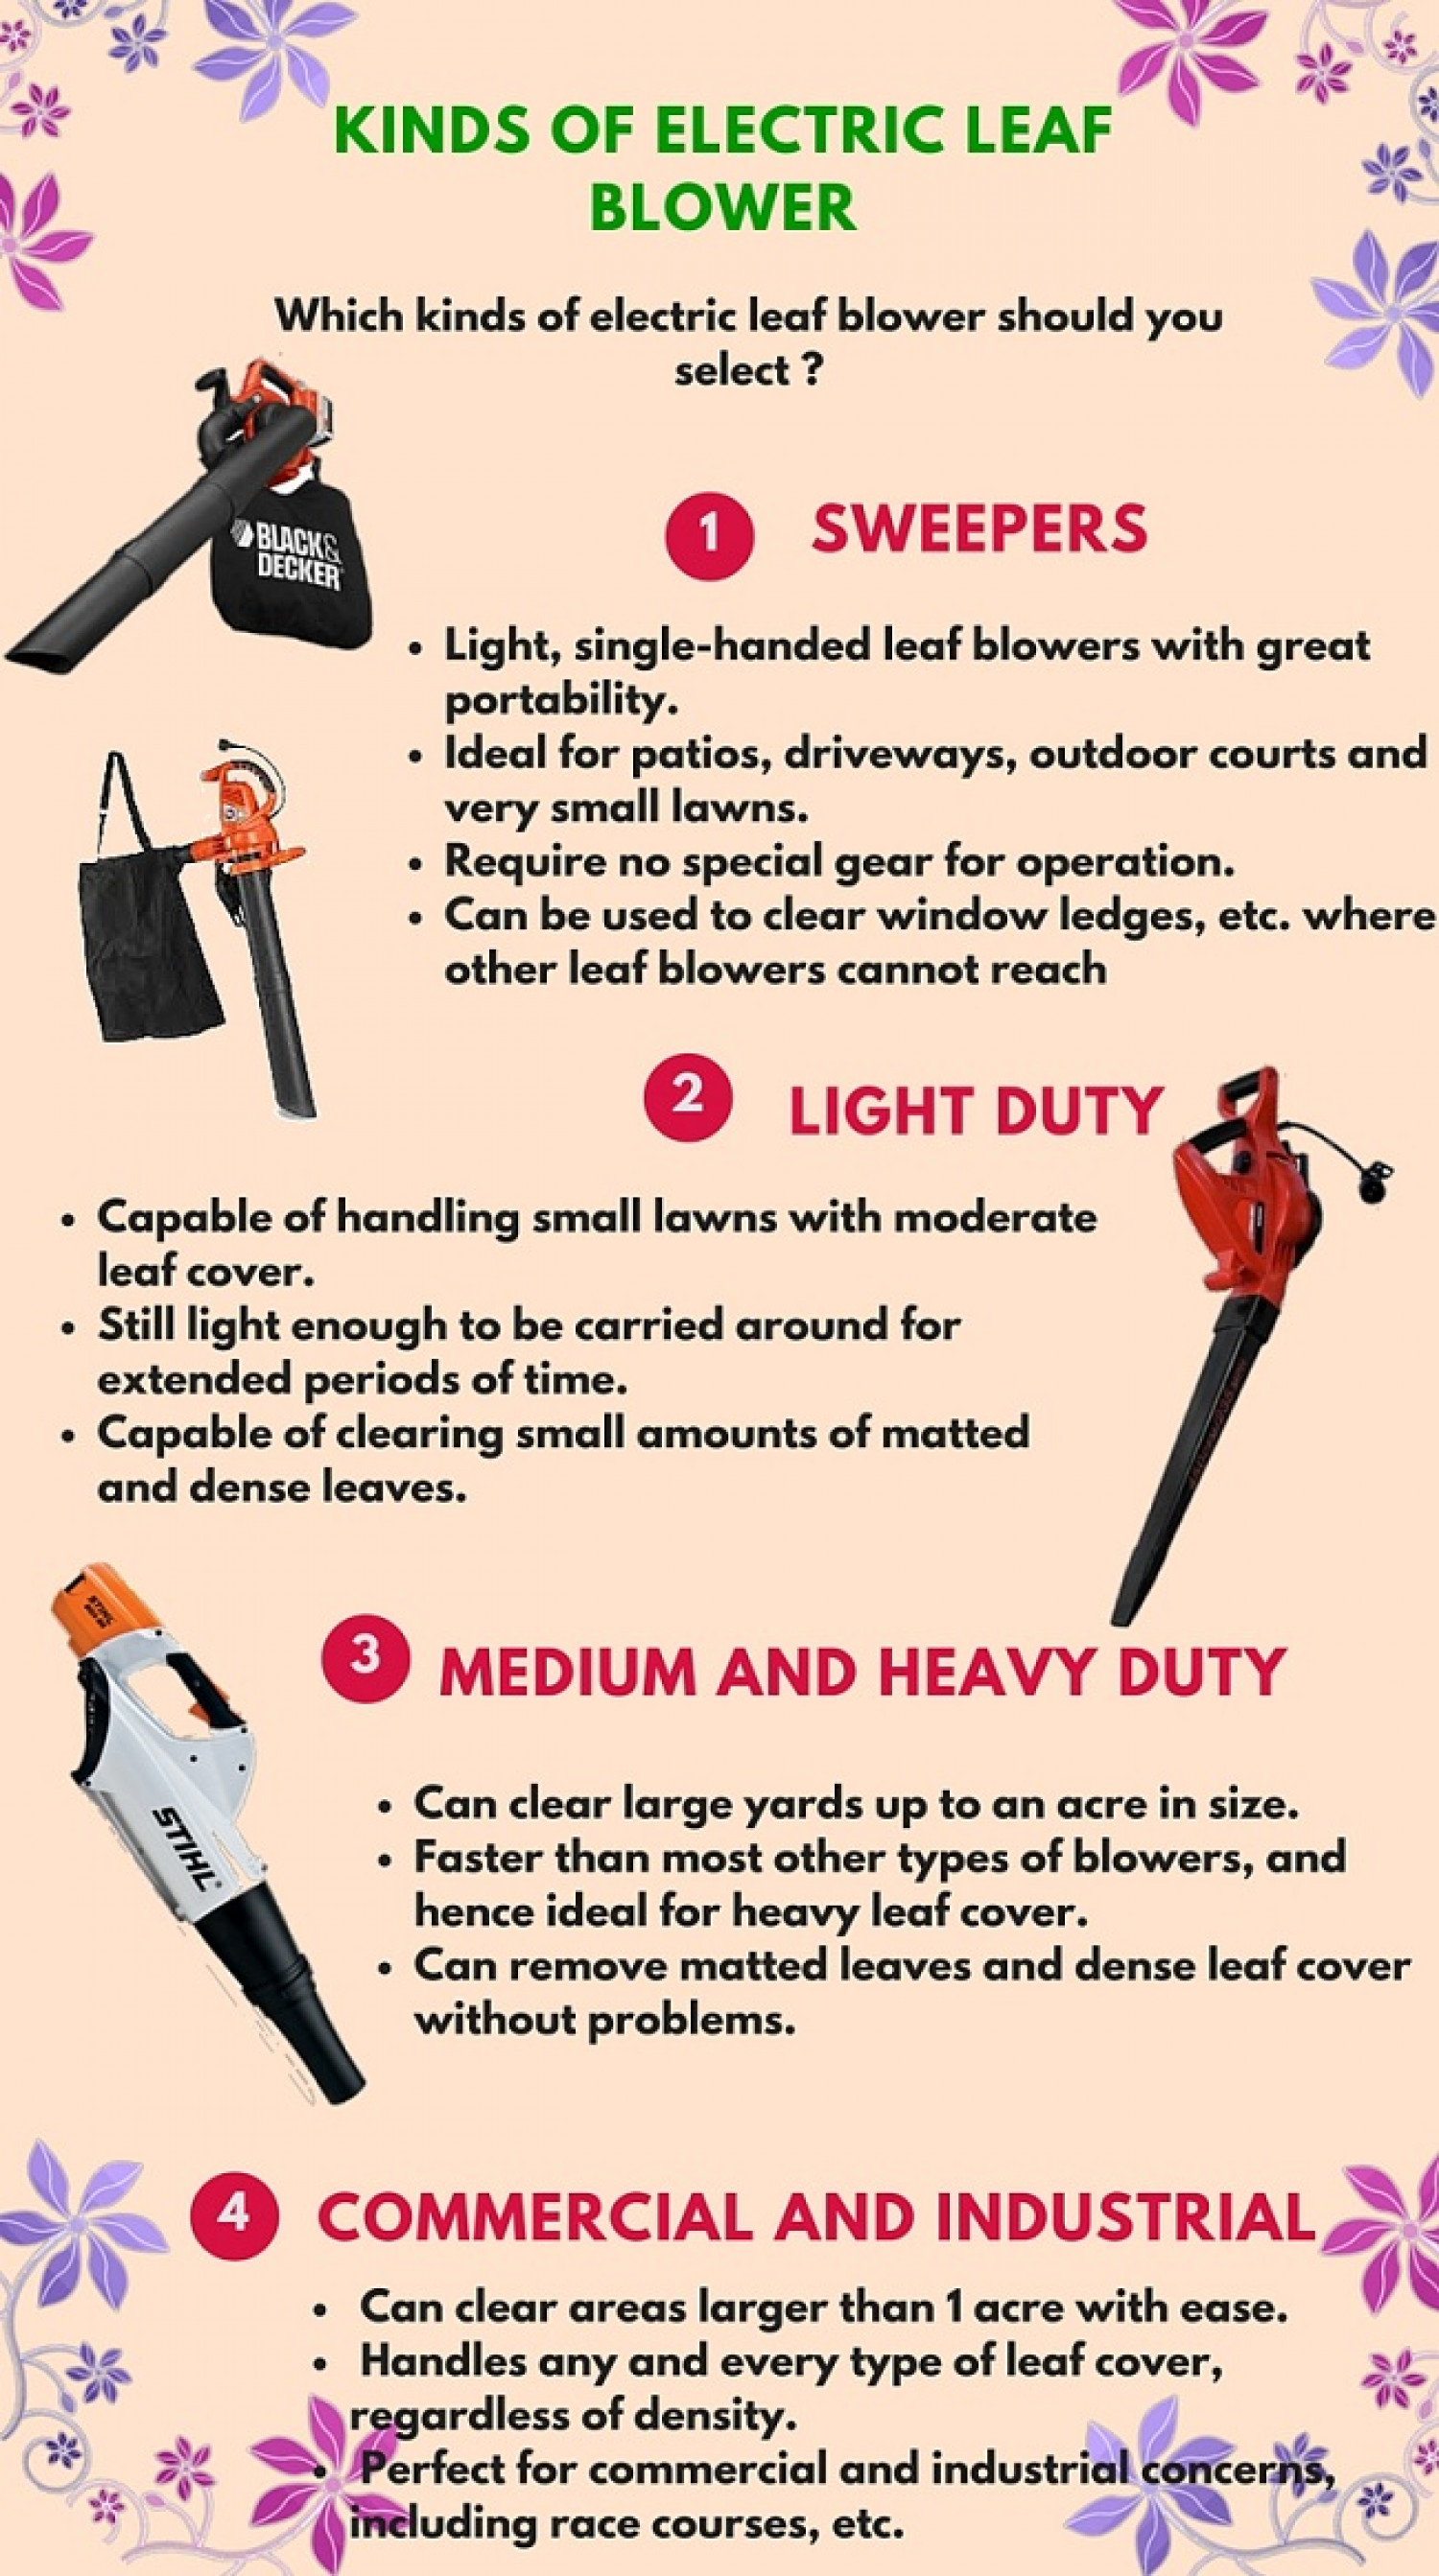 Kinds of Electric Leaf Blower Should You Select infographic